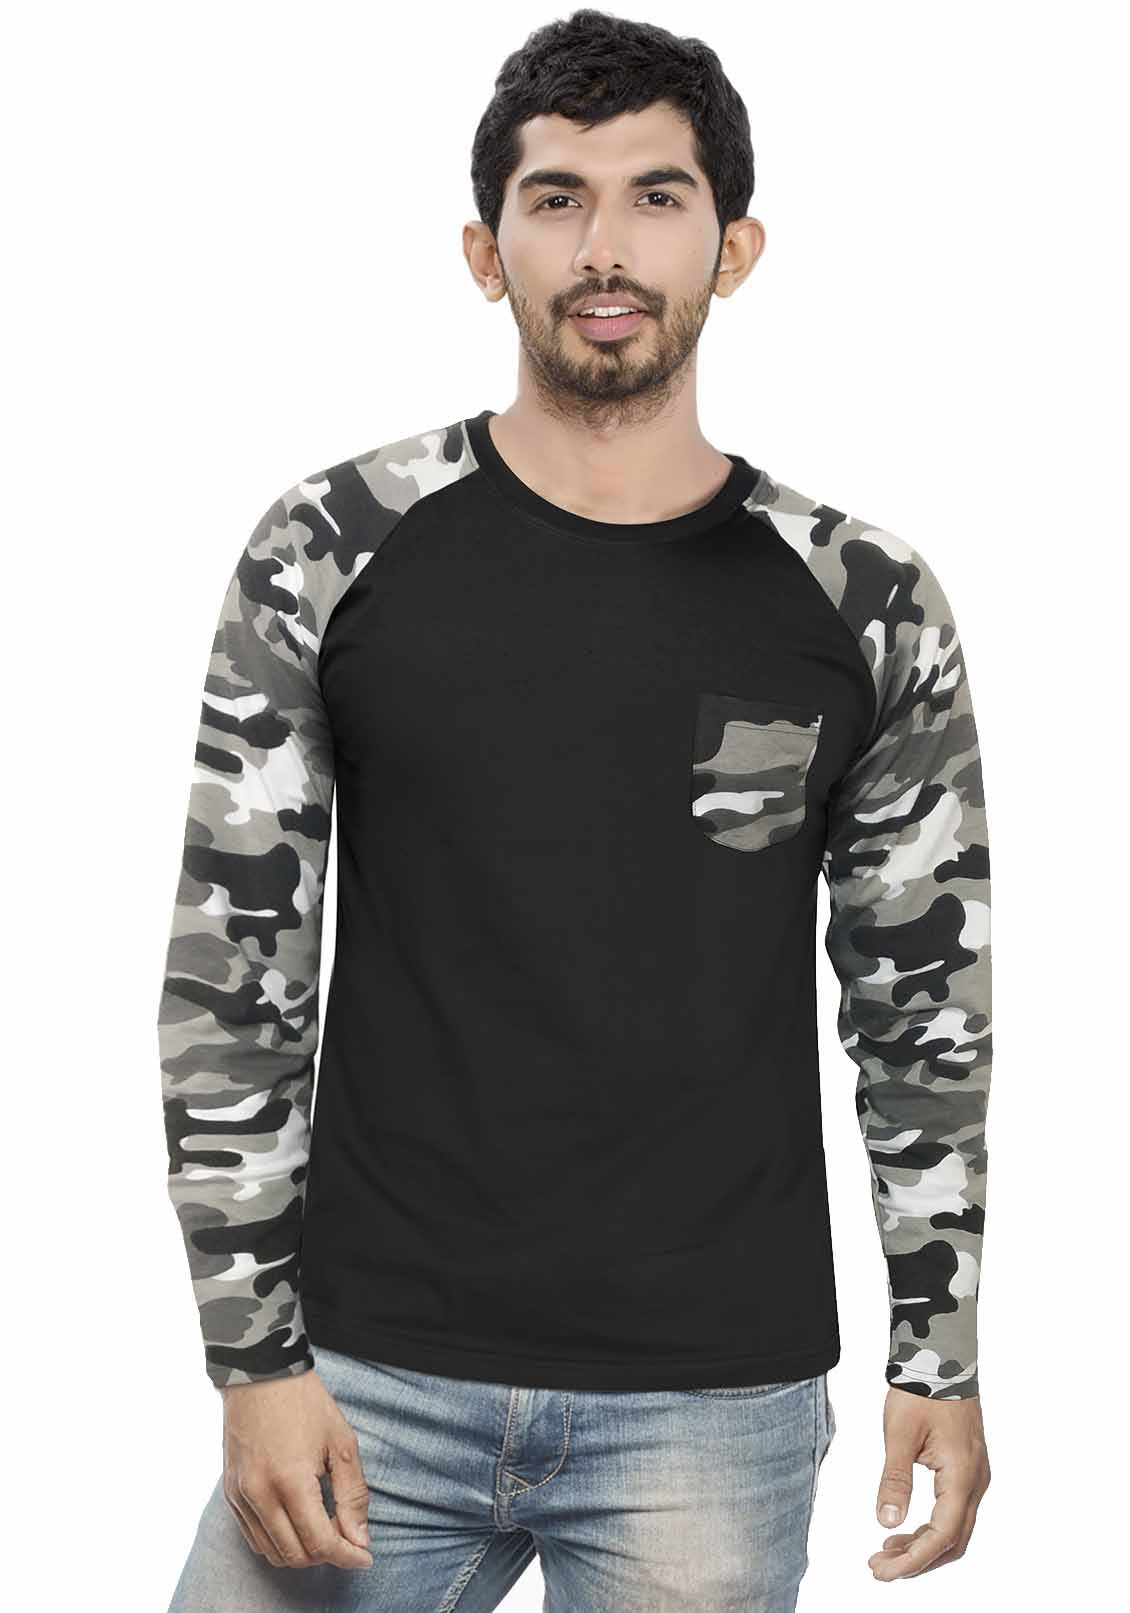 1d3bd411 Army White Camouflage Raglan Full Sleeves T-Shirt | Printed Camo Full  Sleeves T-Shirts – |WYO.in – Wear Your Opinion - WYO.in